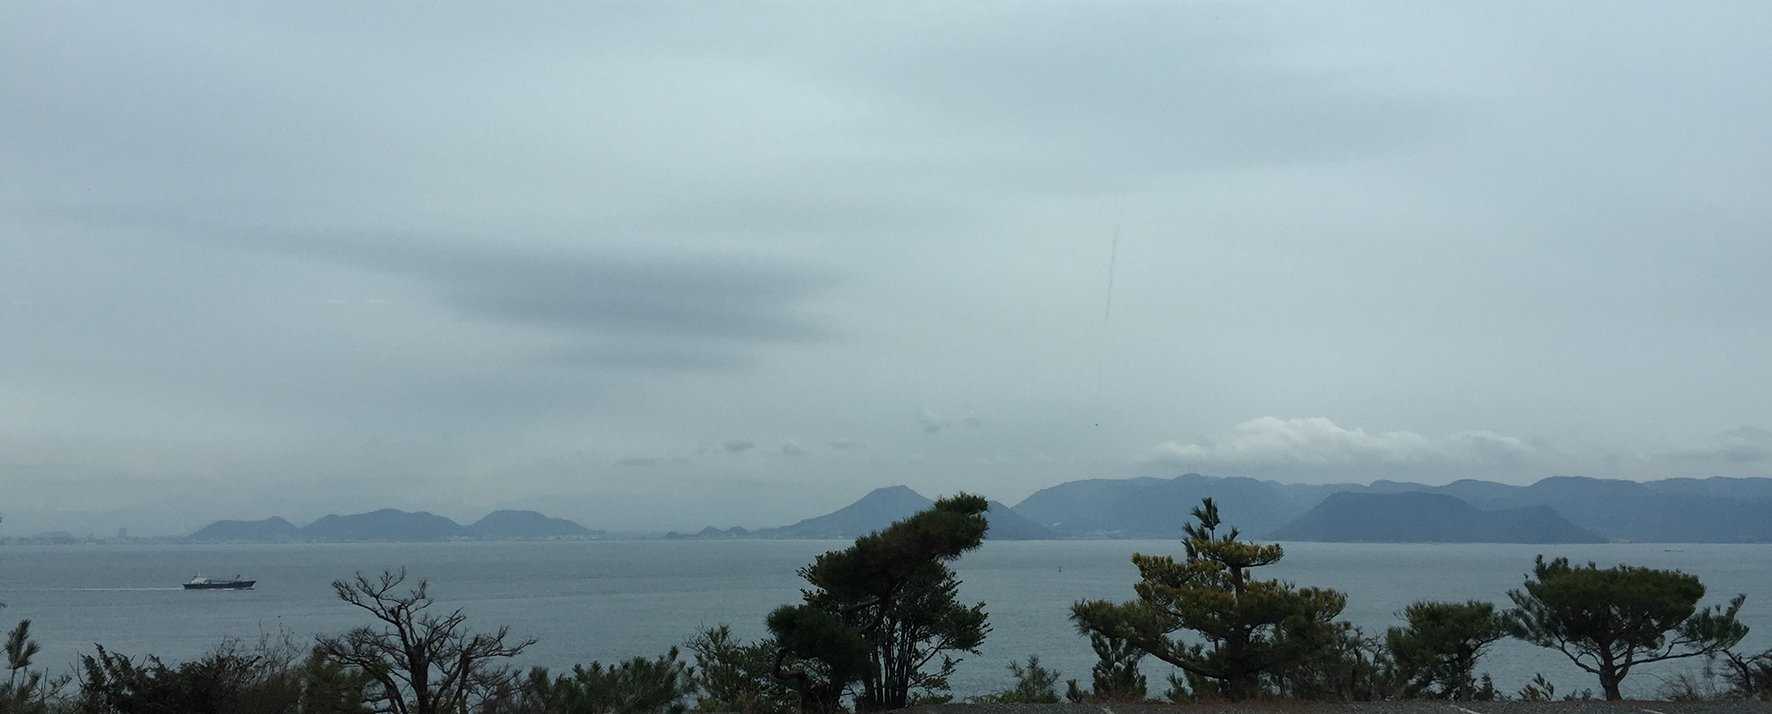 Image of the Inland Sea in Japan. View from Naoshima Island looking out on the water.